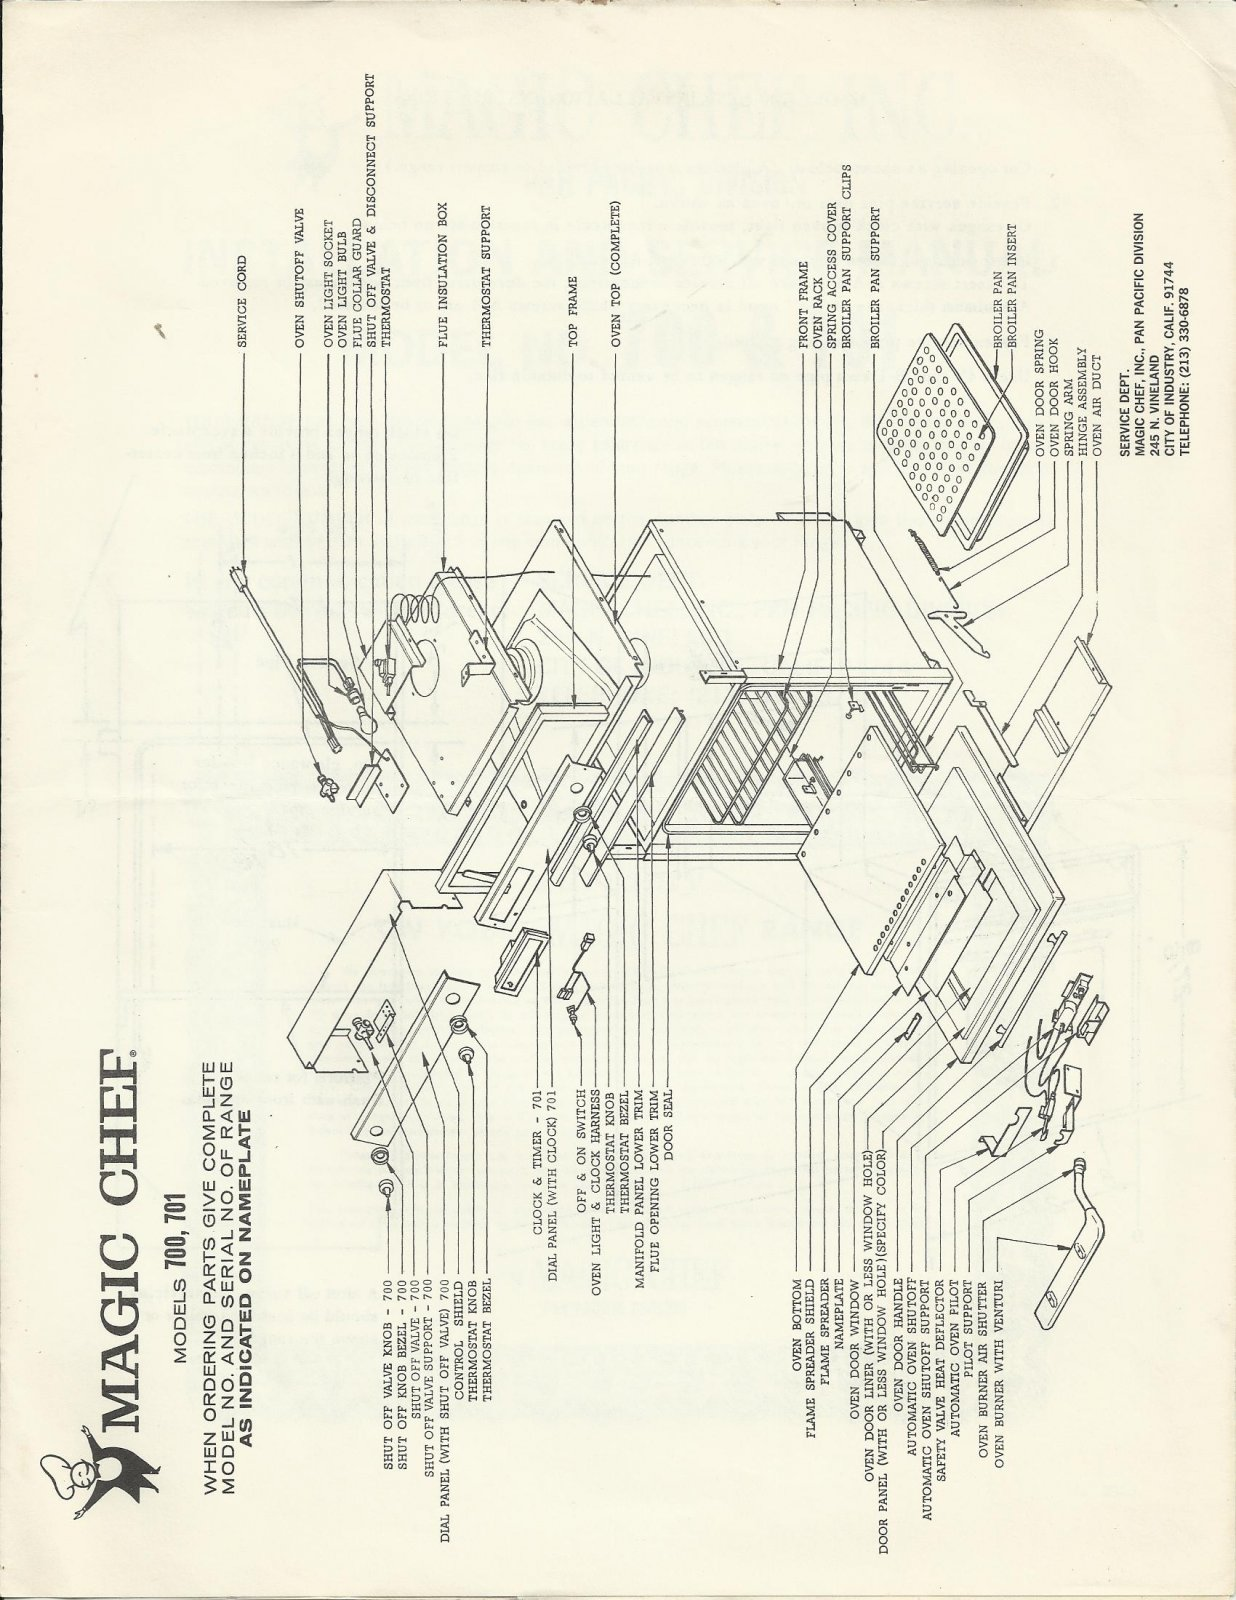 Oven pilot light problem, '79 Magic Chef - Airstream Forums on magic chef stove control panel, magic chef stove model number location, magic chef electric cooker, whirlpool gas dryer wiring diagram, magic chef stove regulator, magic chef stove timer, magic chef oven schematics, magic chef refrigerator wiring schematic, magic chef oven parts, magic chef stove plug, magic chef stove cover, oven wiring diagram, magic chef gas cooktop parts, magic chef gas stove diagram, magic wire diagrams, magic chef stove parts, magic chef stove manual, kenmore dryer wiring diagram, magic chef electric stove,